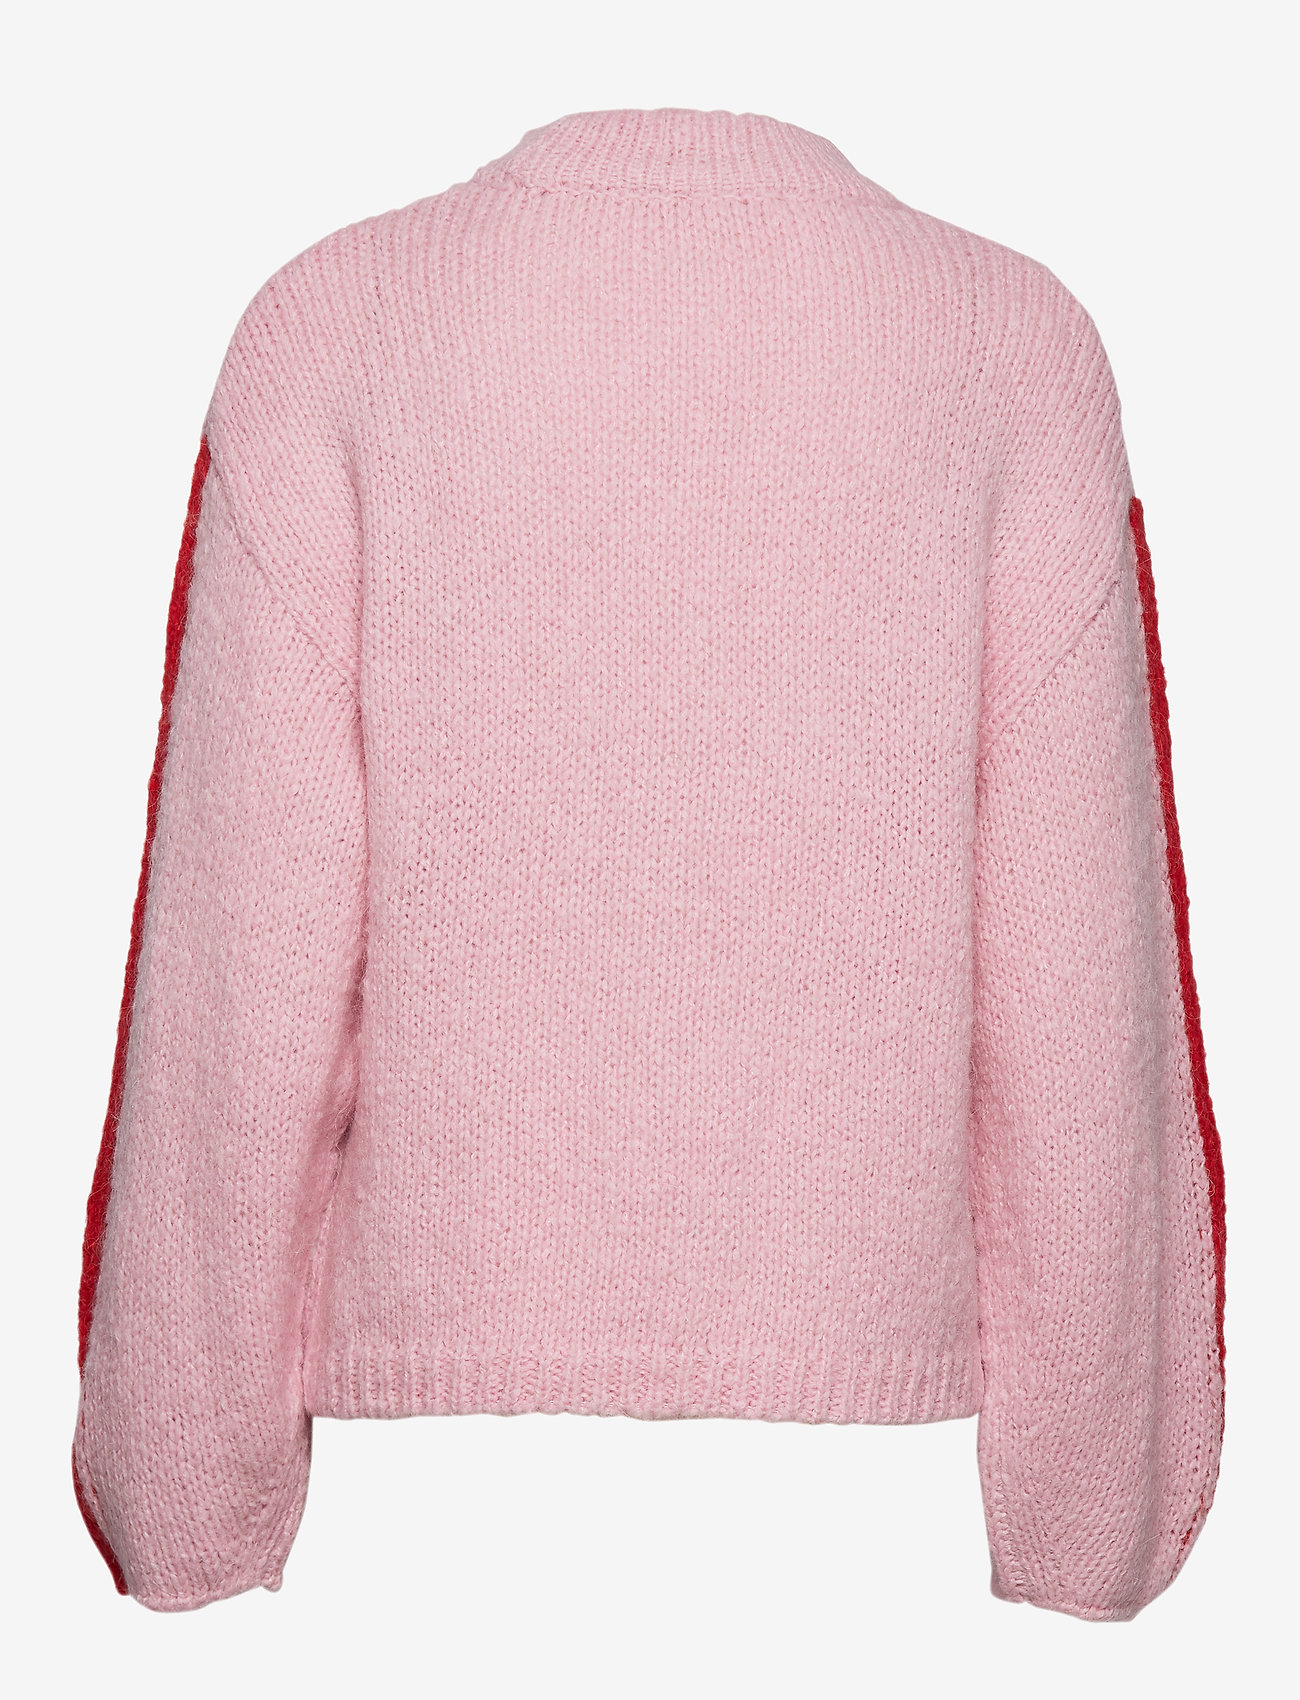 Lee Jeans - CHUNKY KNIT - gensere - frost pink - 1